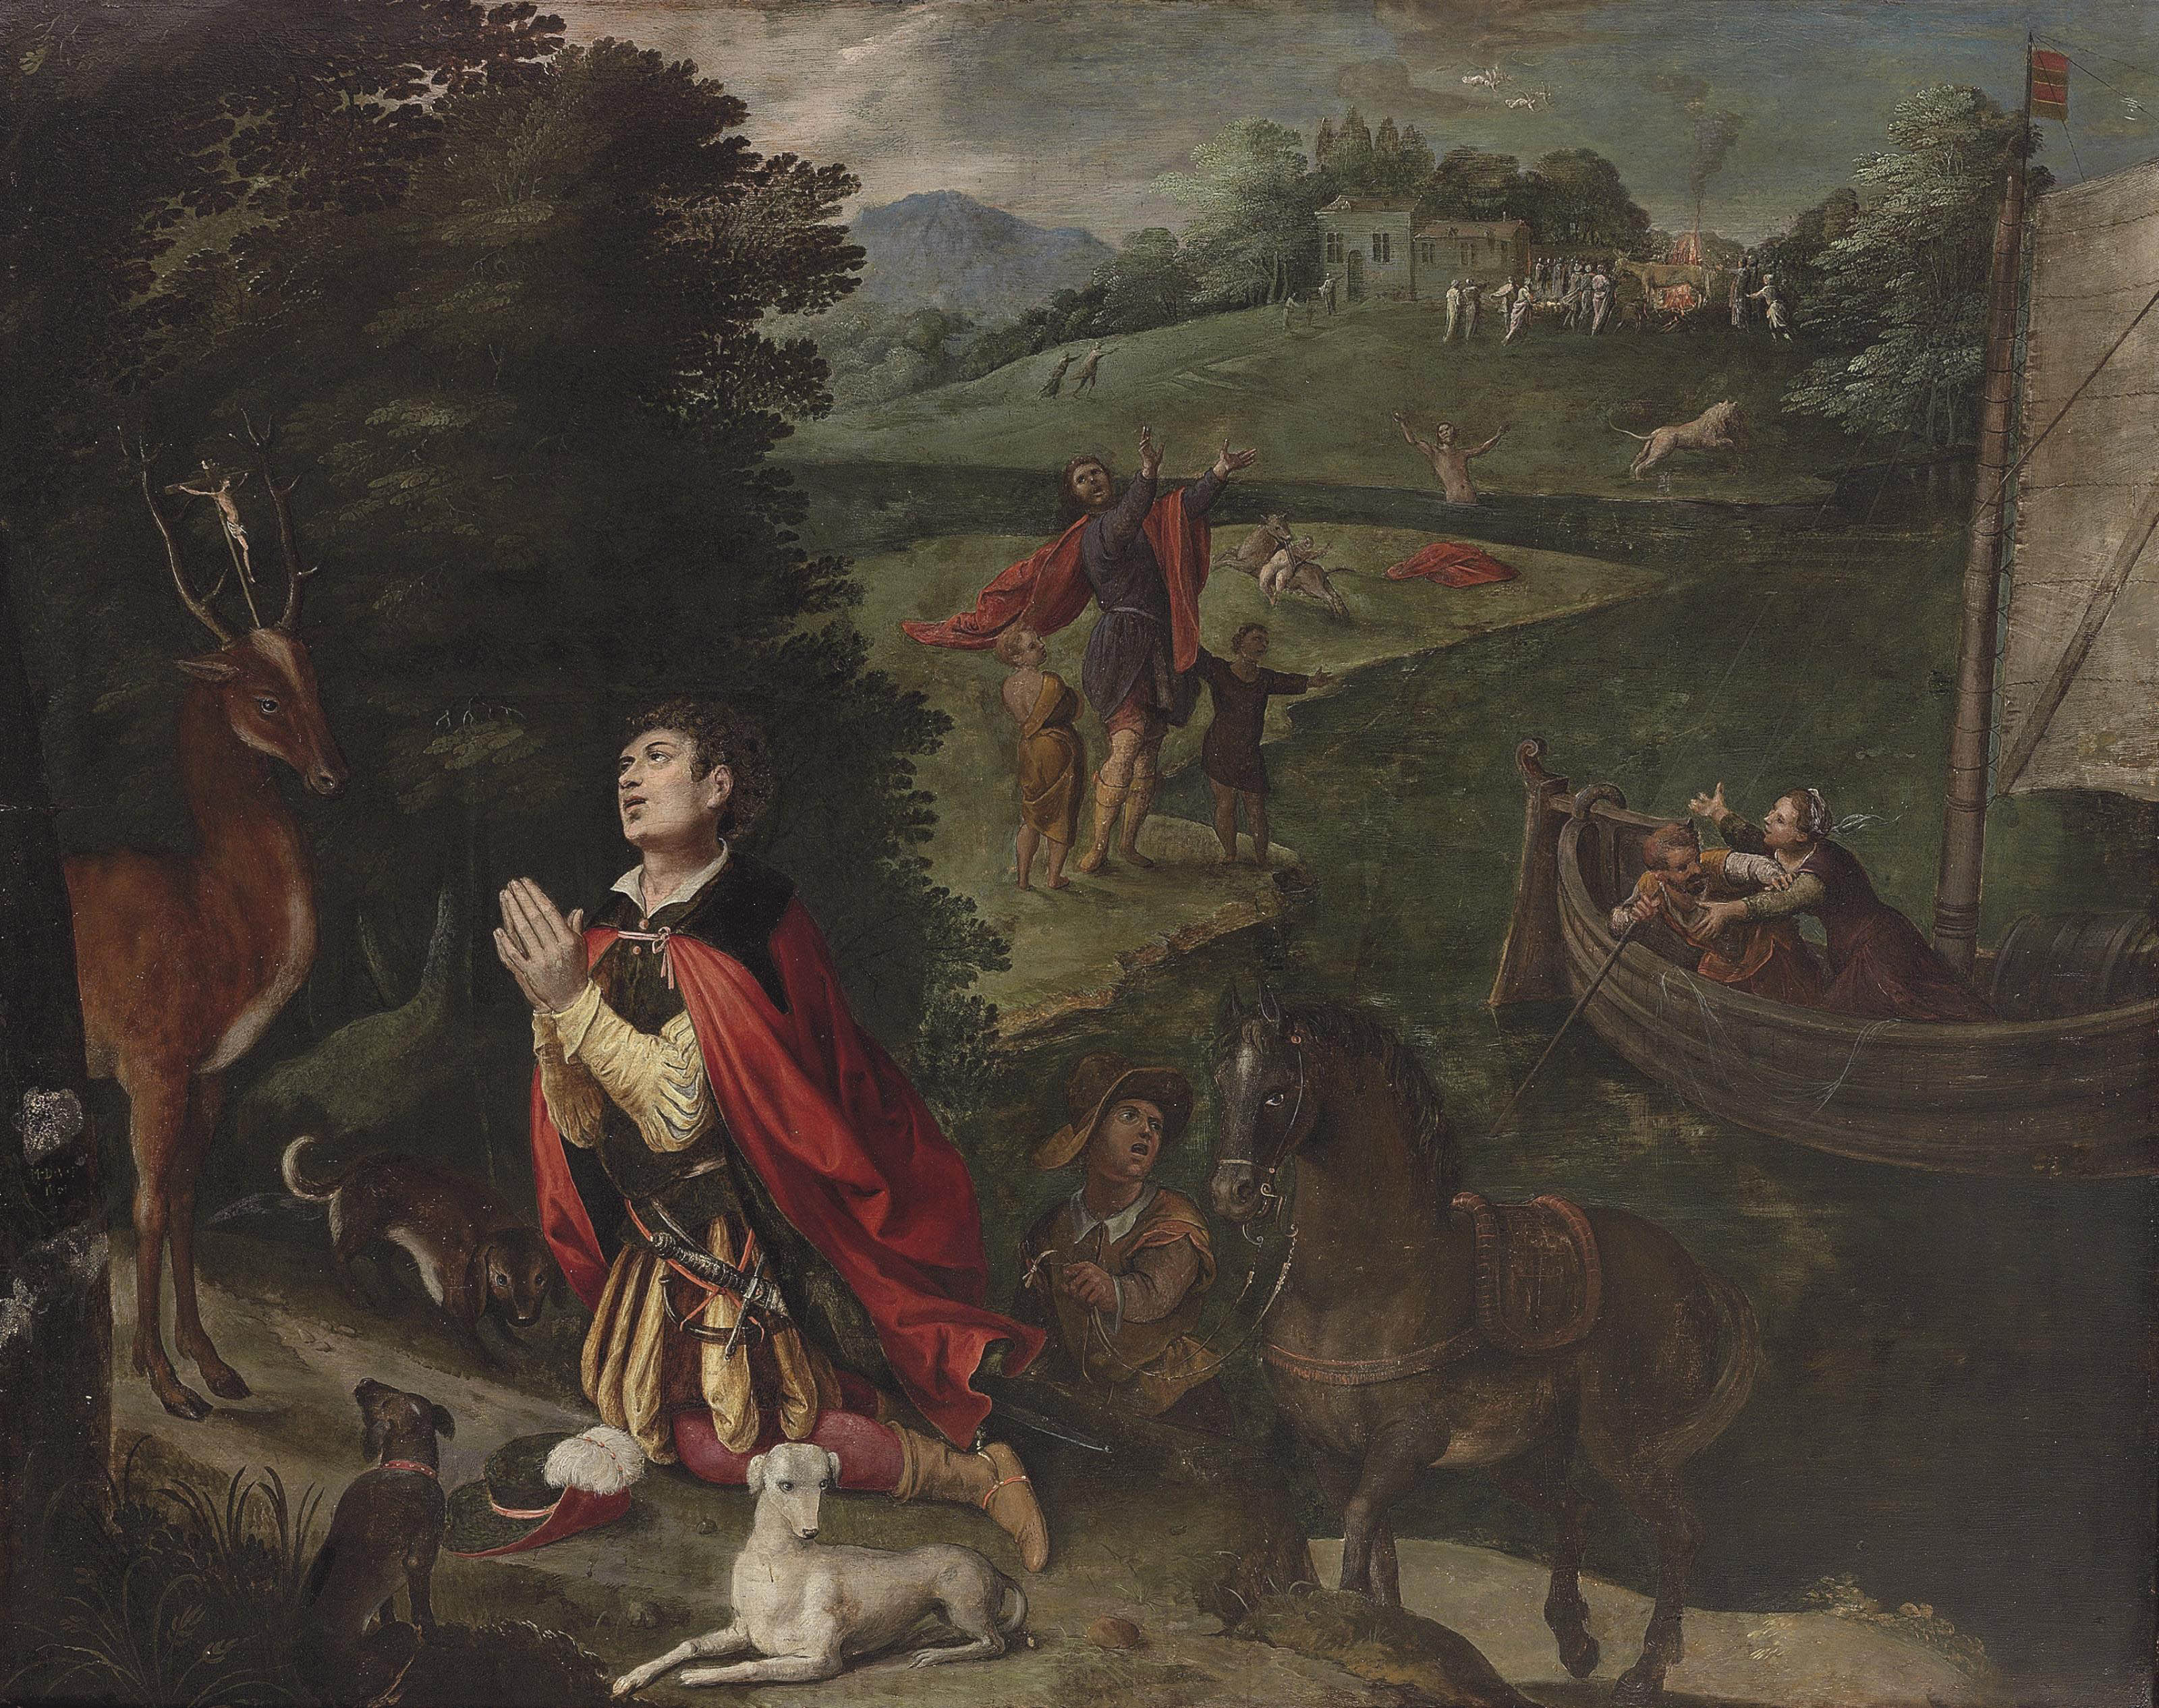 The Vision of Saint Eustace, other scenes with tests of his faith beyond